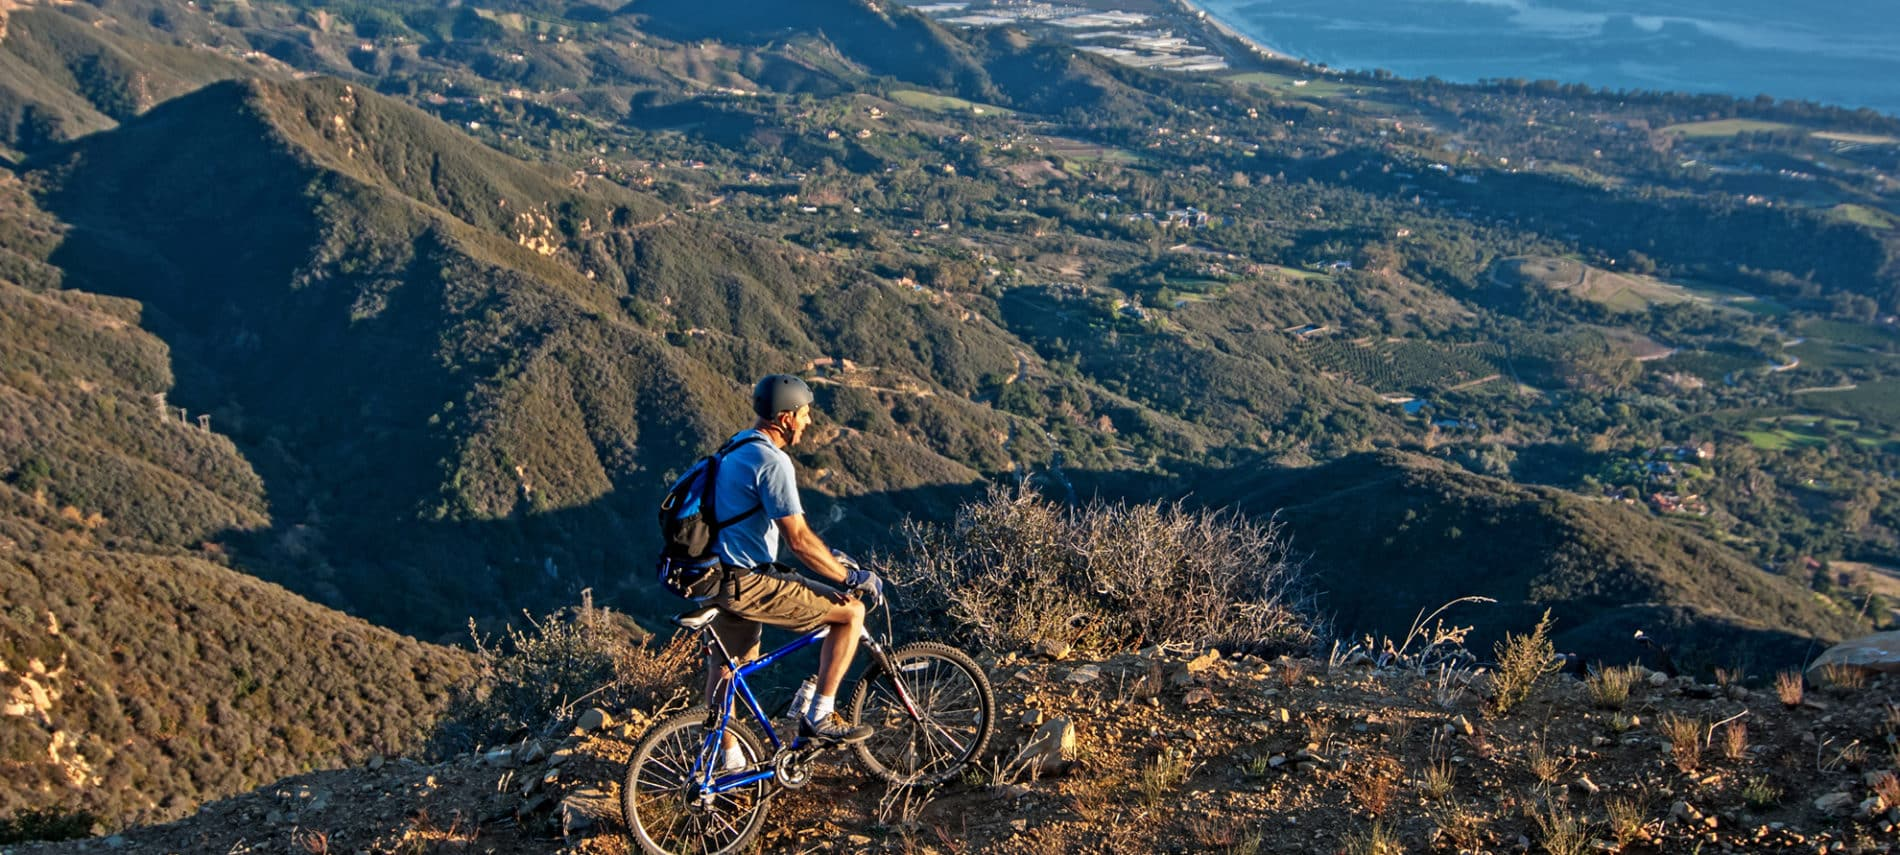 Cyclist in the mountains overlooking the Pacific coast of Santa Barbara CA